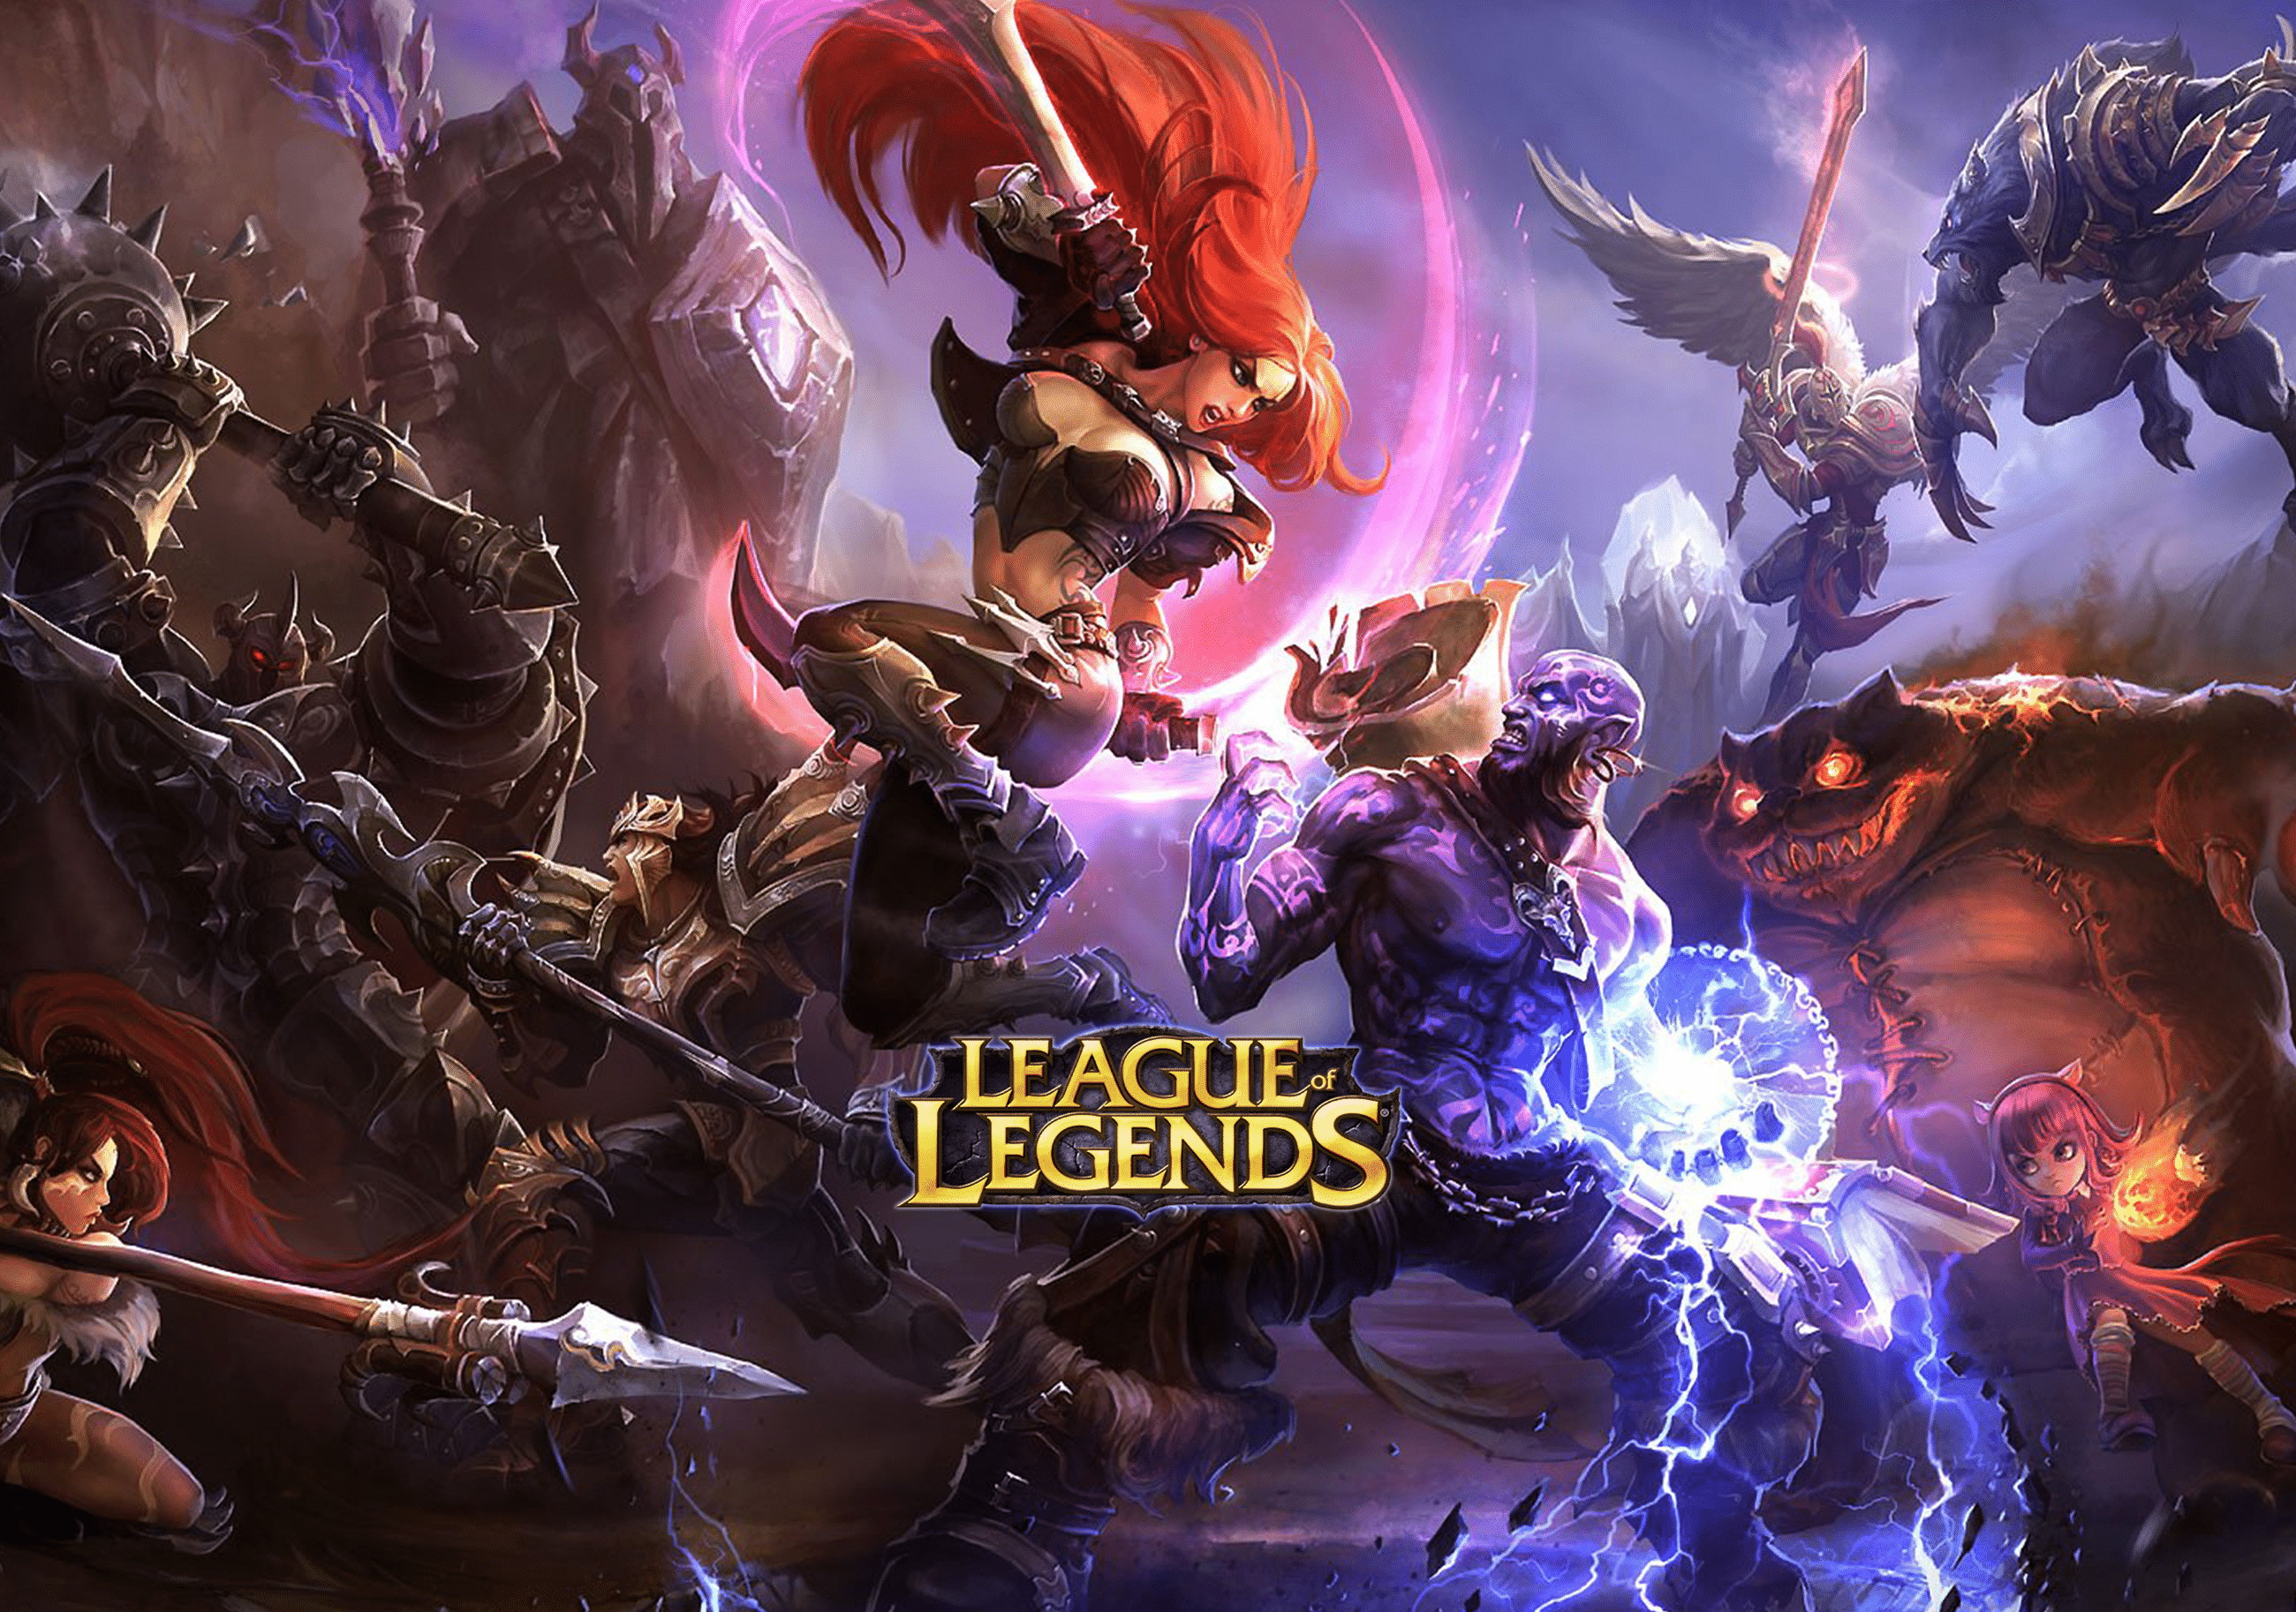 League of Legends character graphics with logo